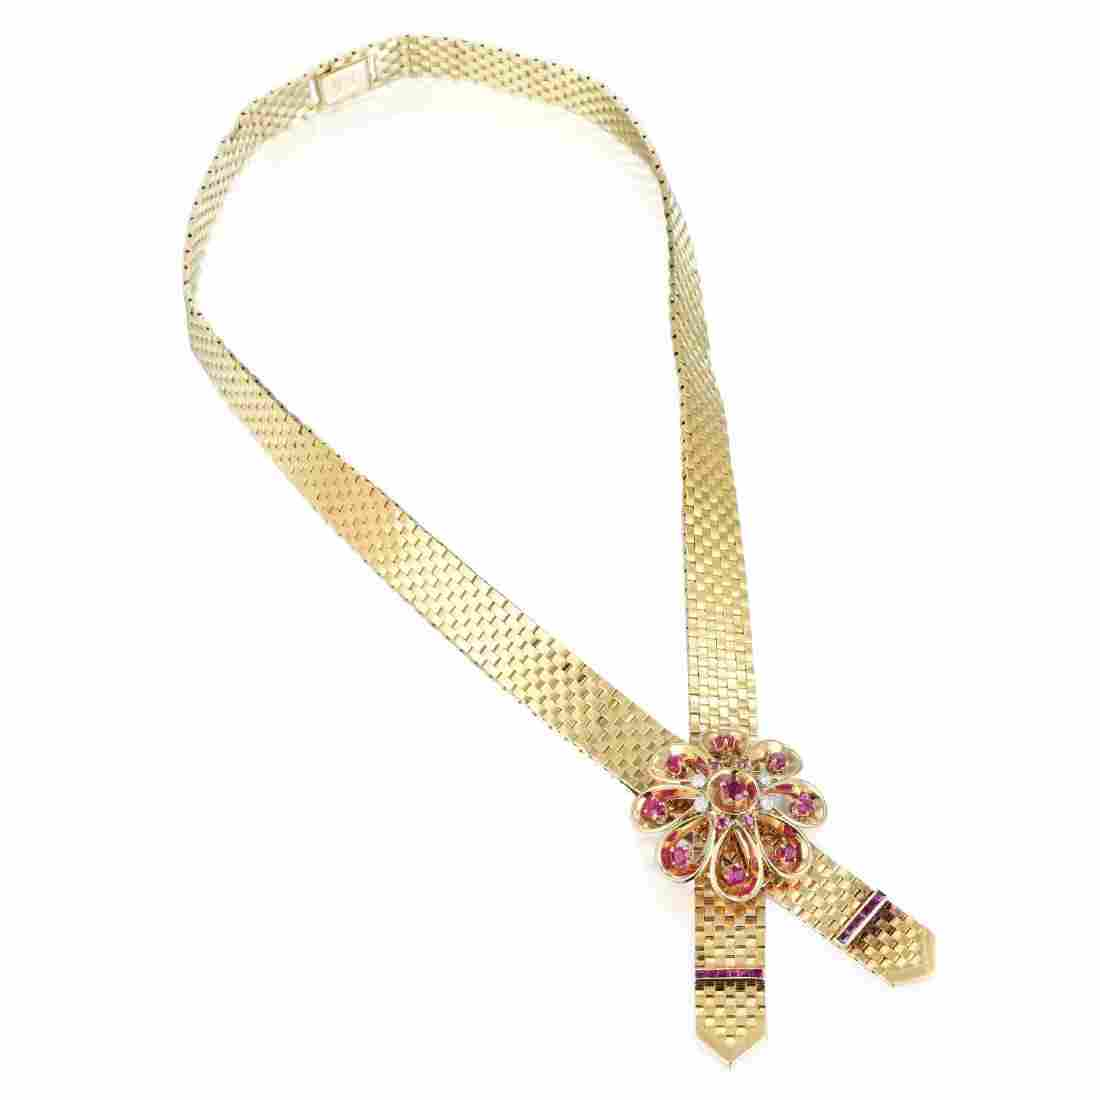 Tiffany & Co. Ruby and Diamond Necklace